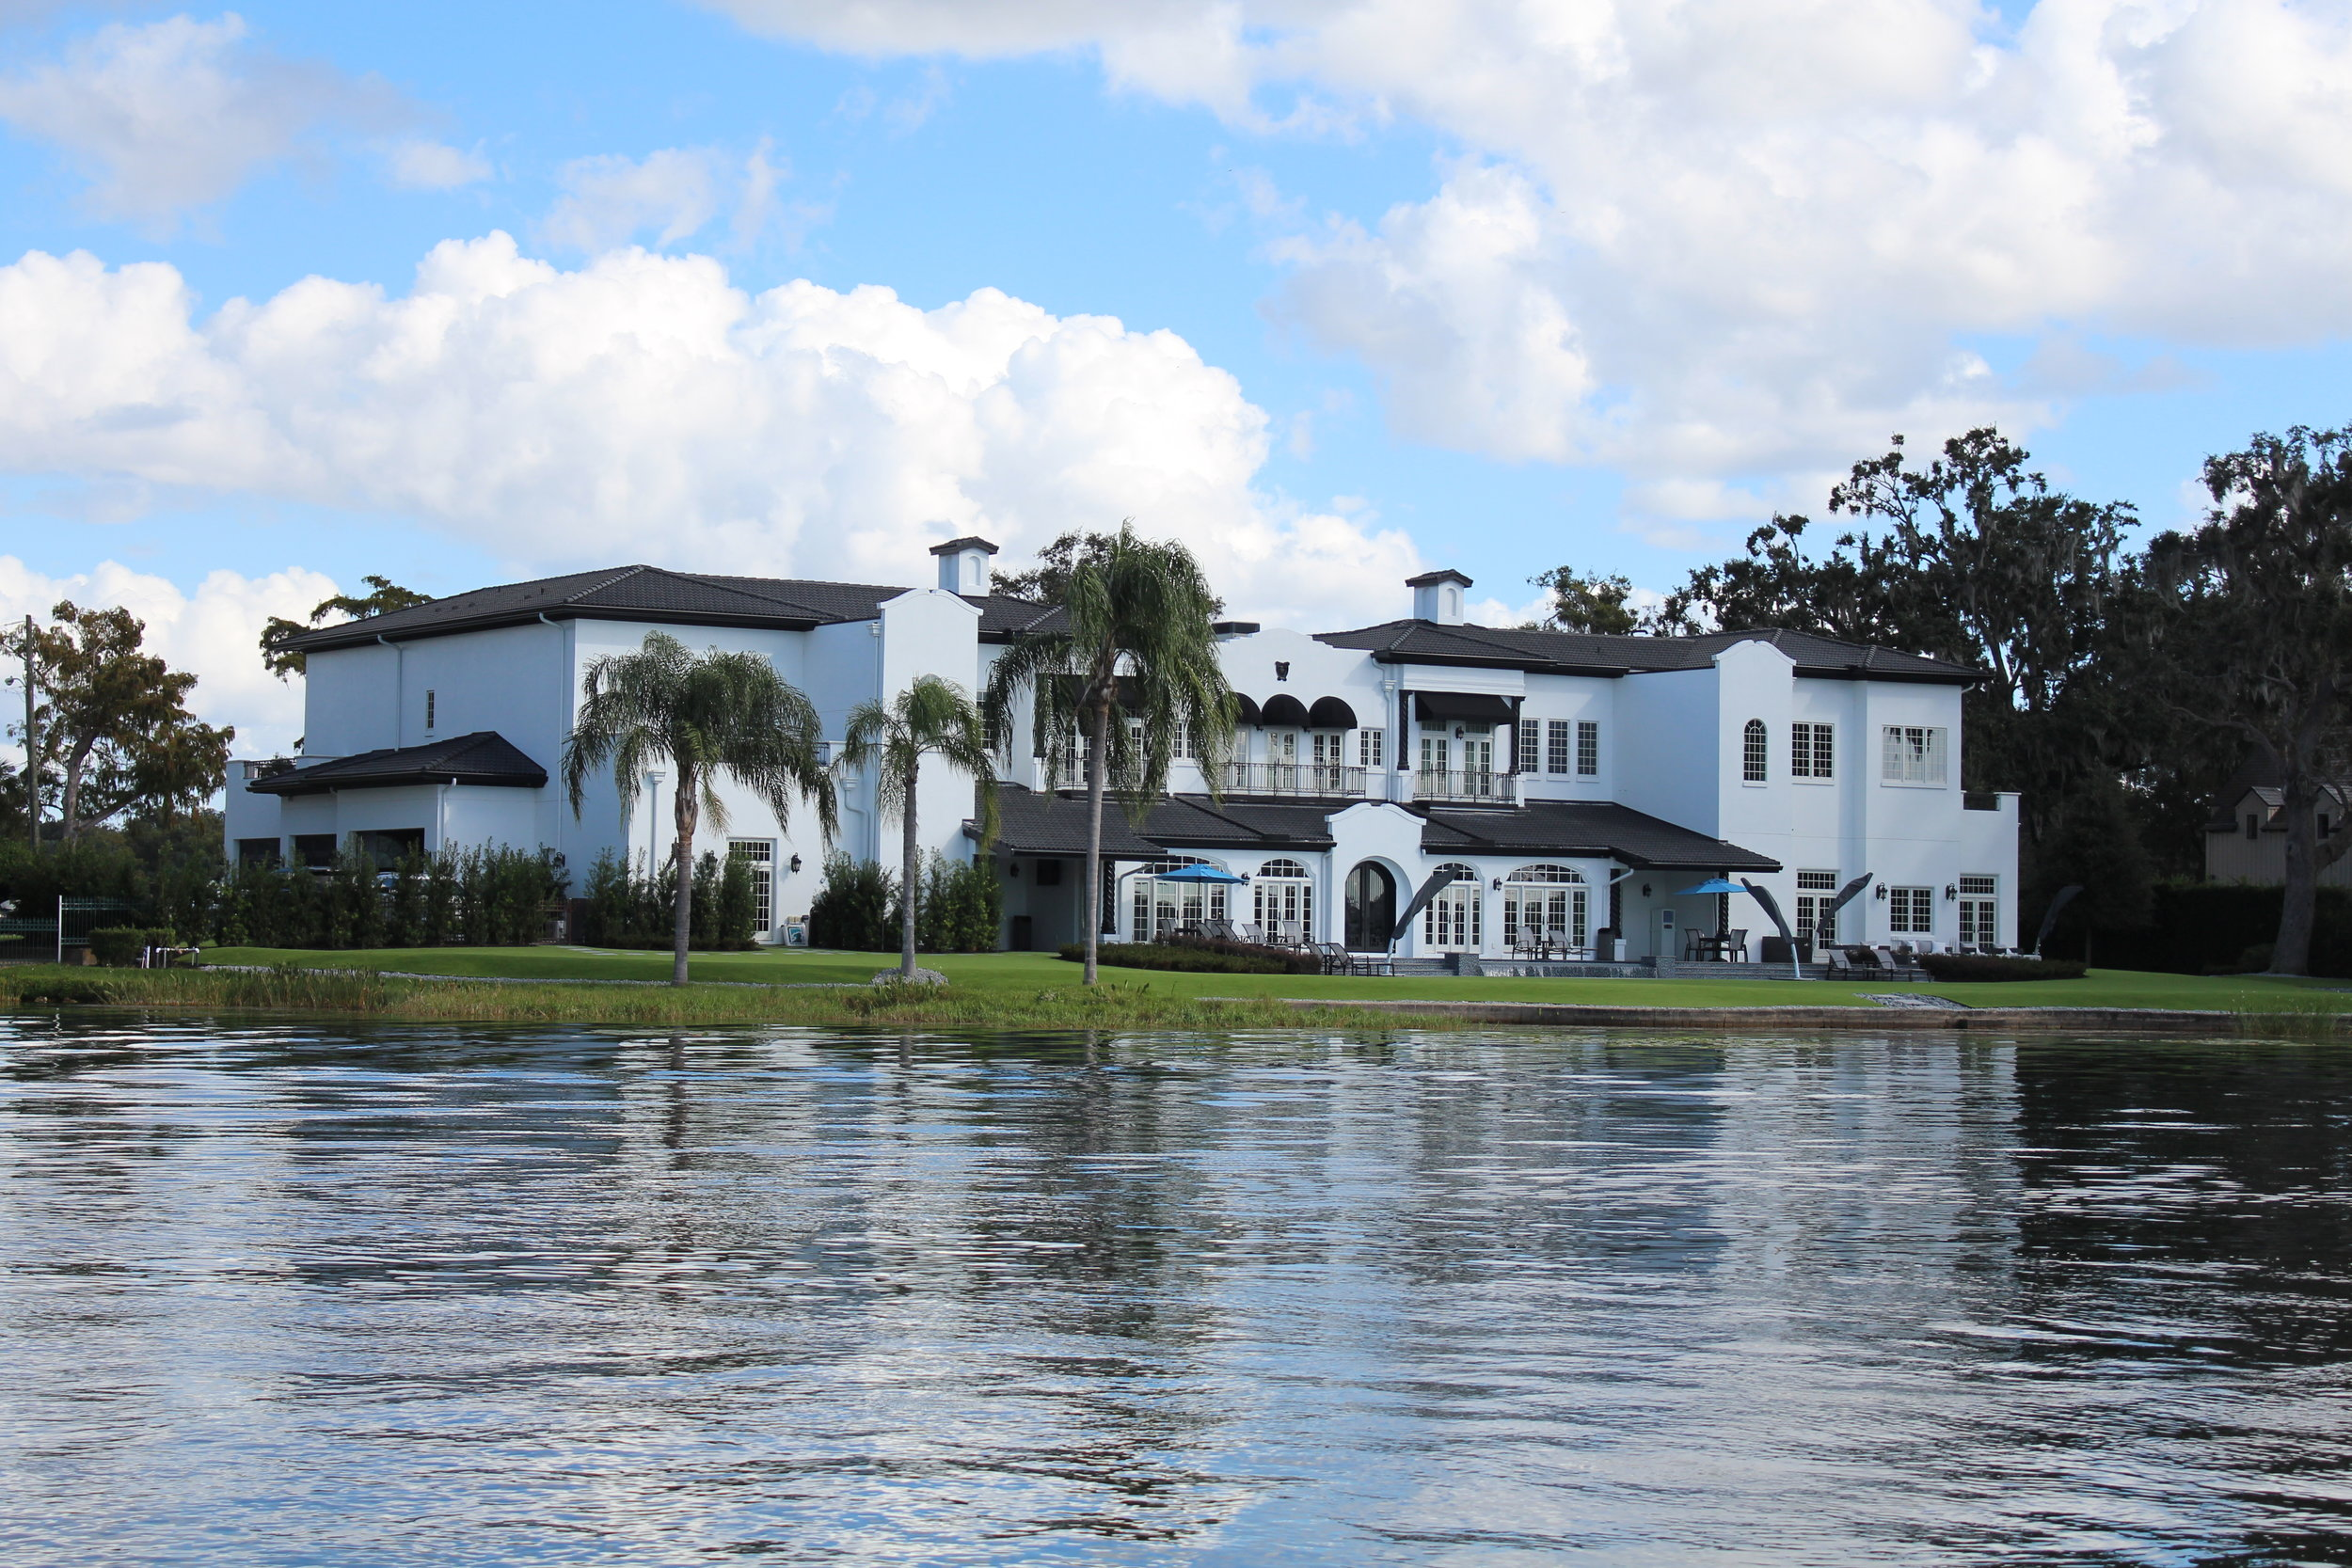 View of a typical Winter Park home from the boat